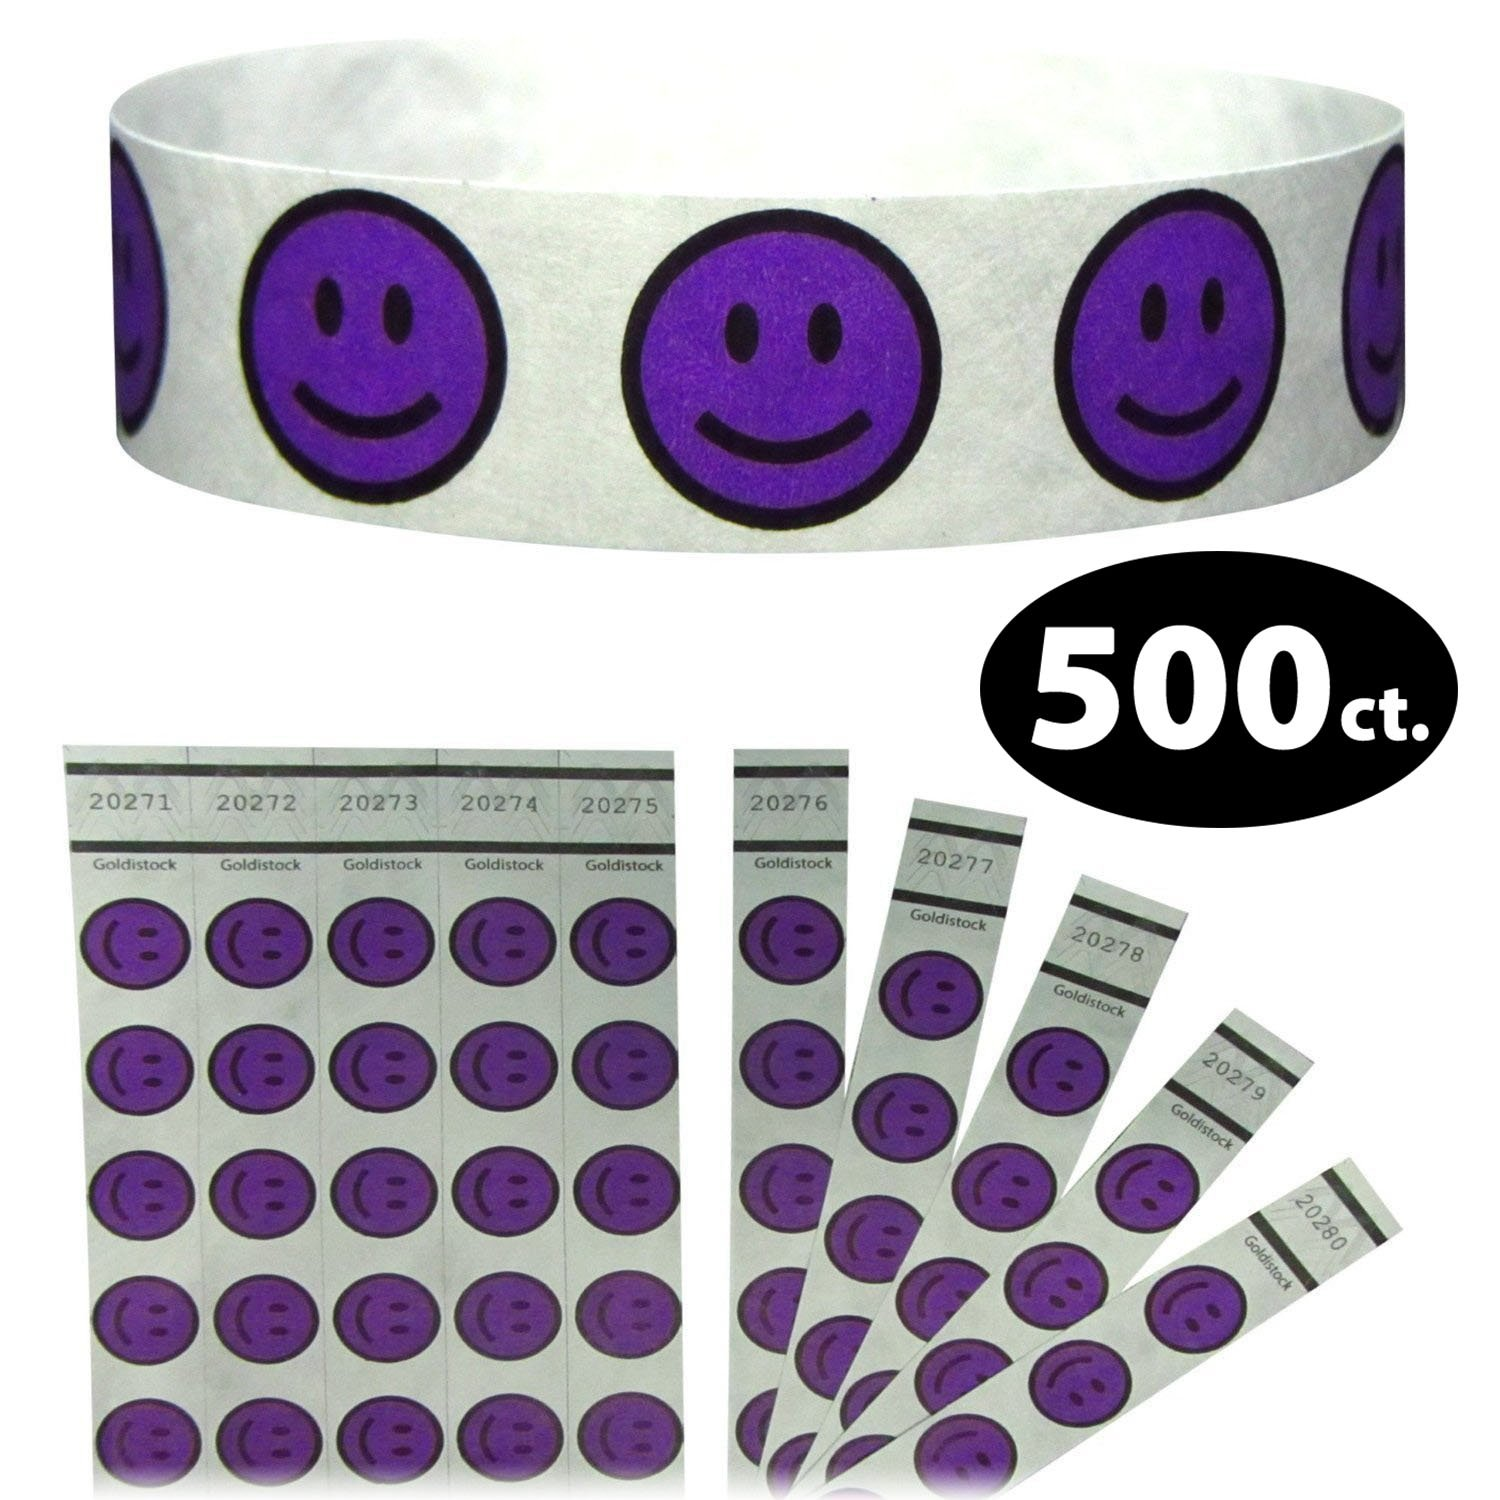 Goldistock 3//4 Tyvek Wristbands Happy Smiley Face Paper - Like Texture Neon Red 500 Count Event Identification Bands